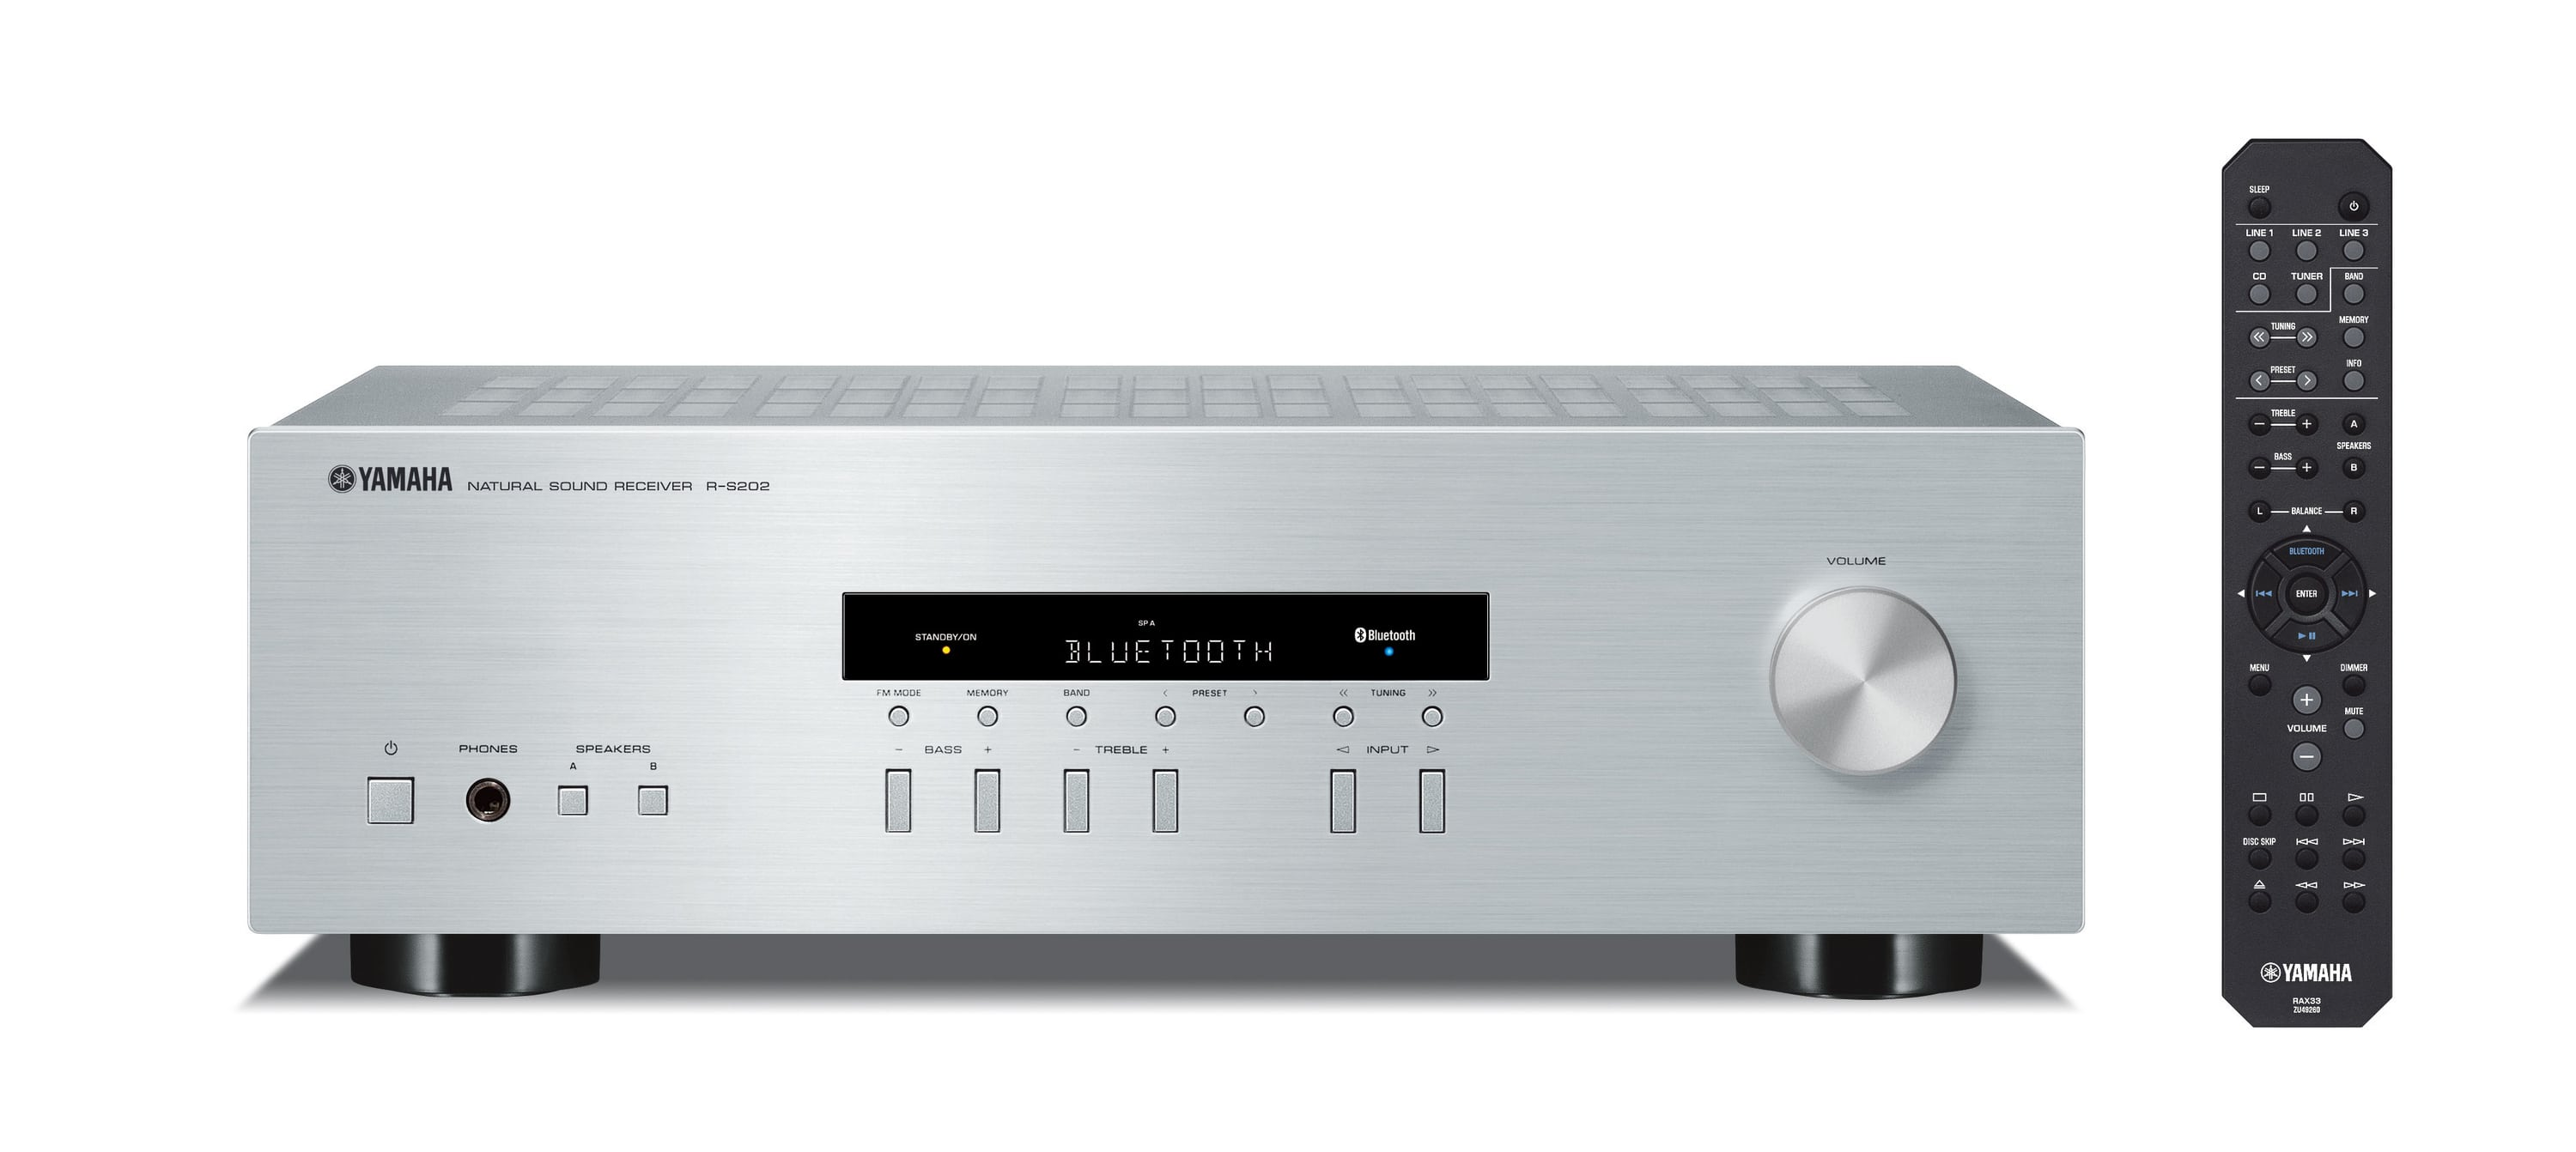 Yamaha R-S202 D Stereo-Receiver 140W pro Kanal UKW/MW/DAB/DAB+ Tuner für 184,24 Euro